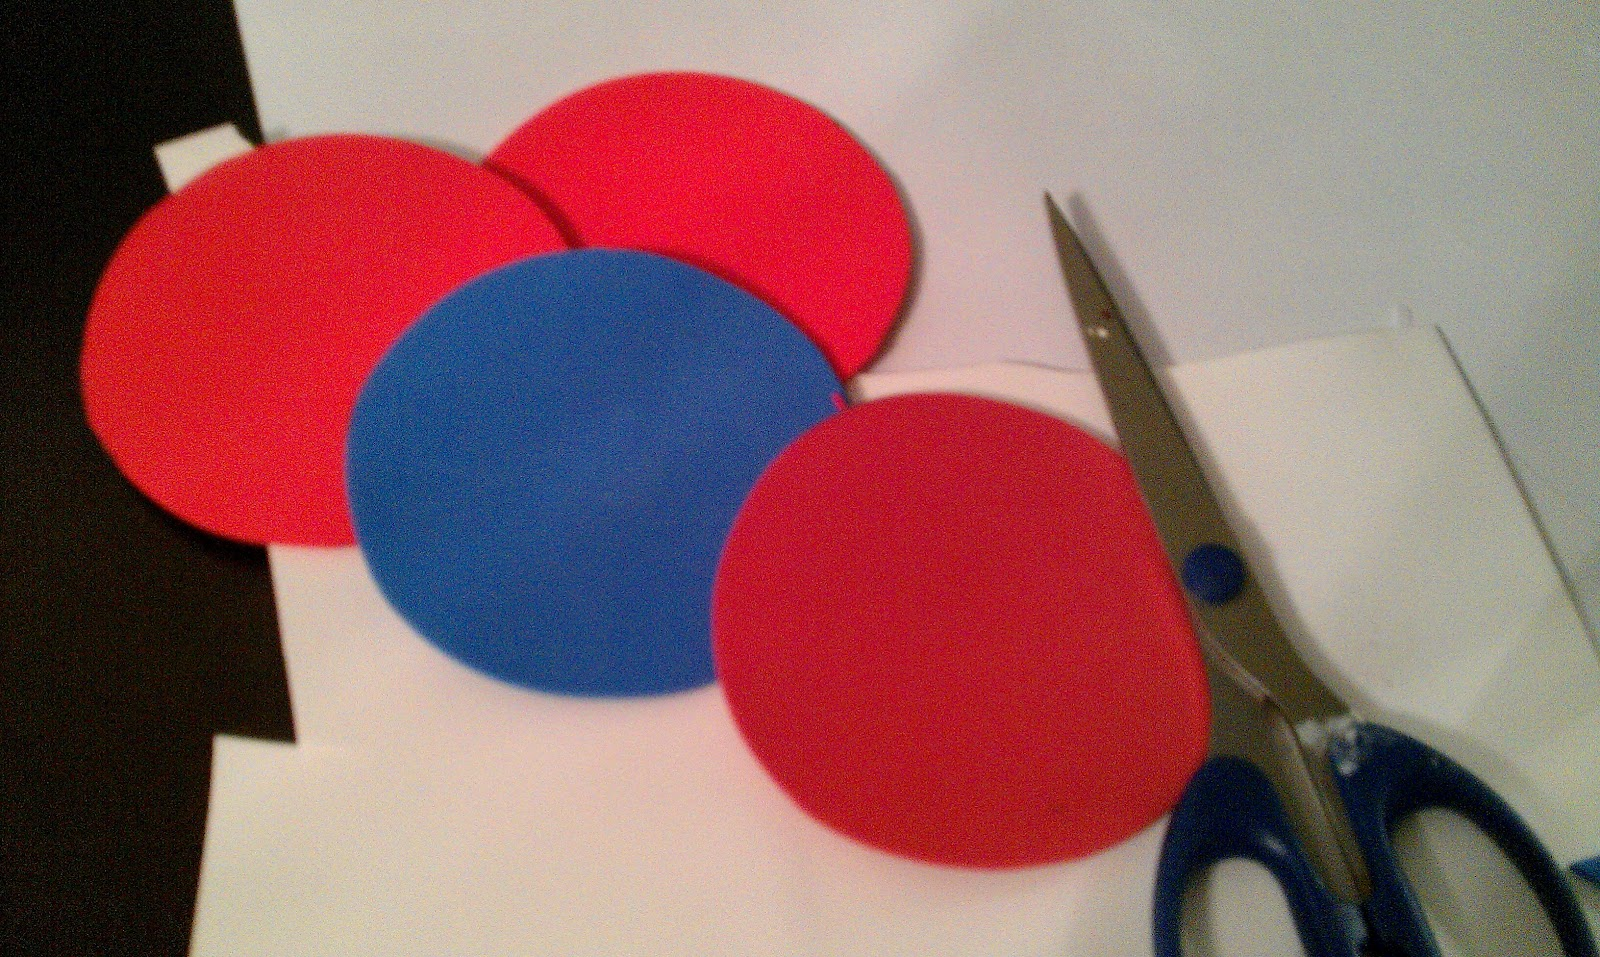 how to cut circles in foam